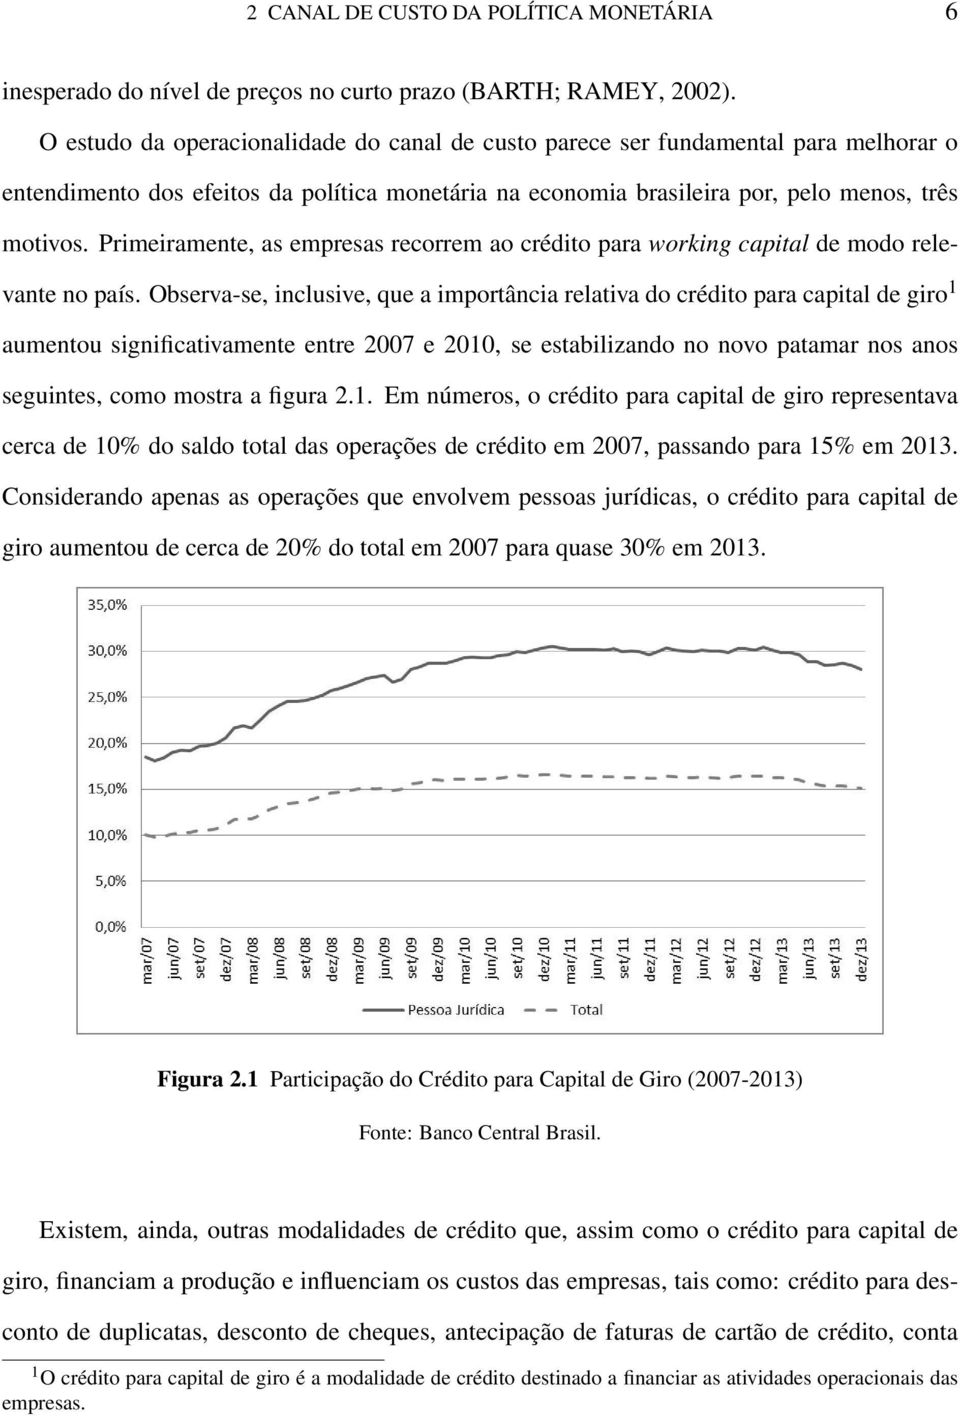 Primeiramente, as empresas recorrem ao crédito para working capital de modo relevante no país.